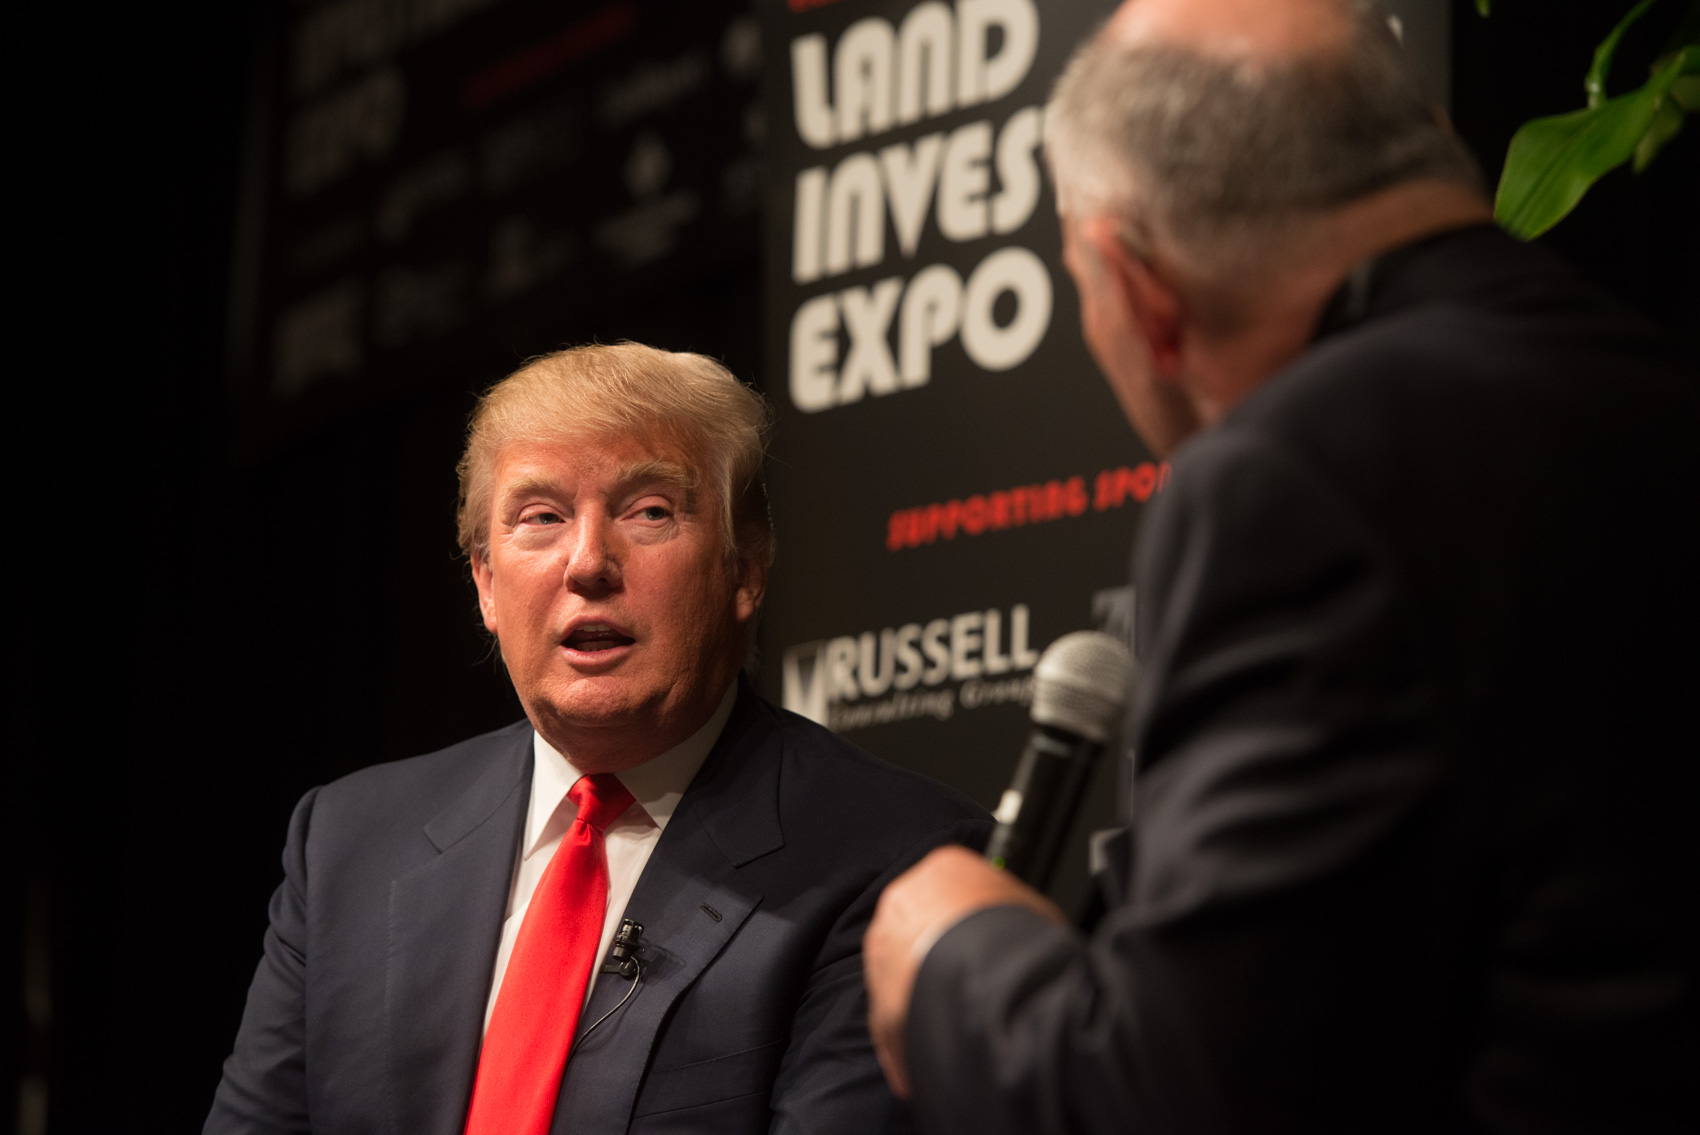 Donald Trump is interviewed by Ken Root during his appearance at the Land Investment Expo in West Des Moines. (Photo: Joseph L. Murphy)